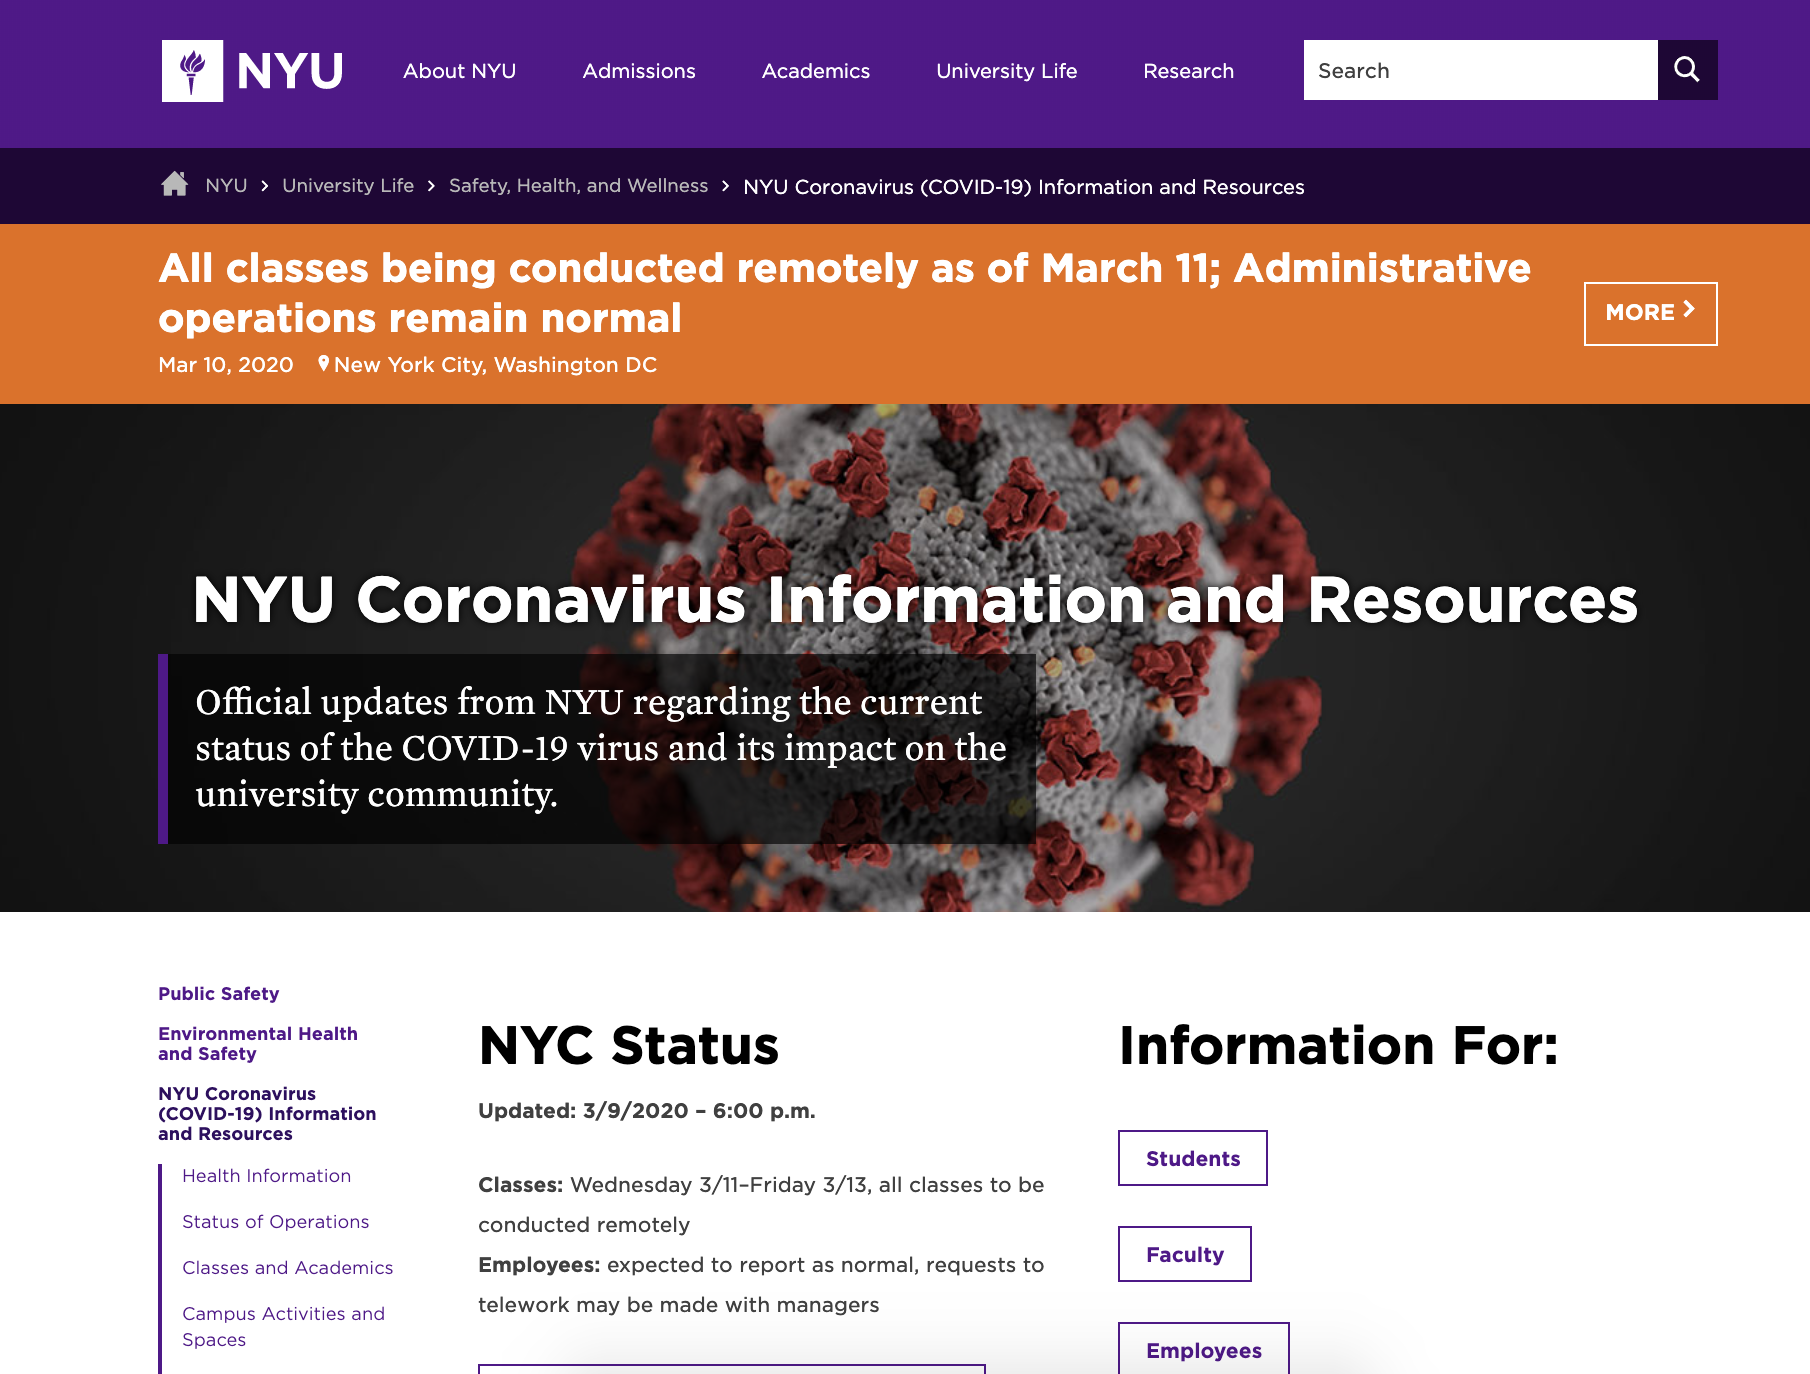 A screenshot of the NYU website for the COVID19 content updates